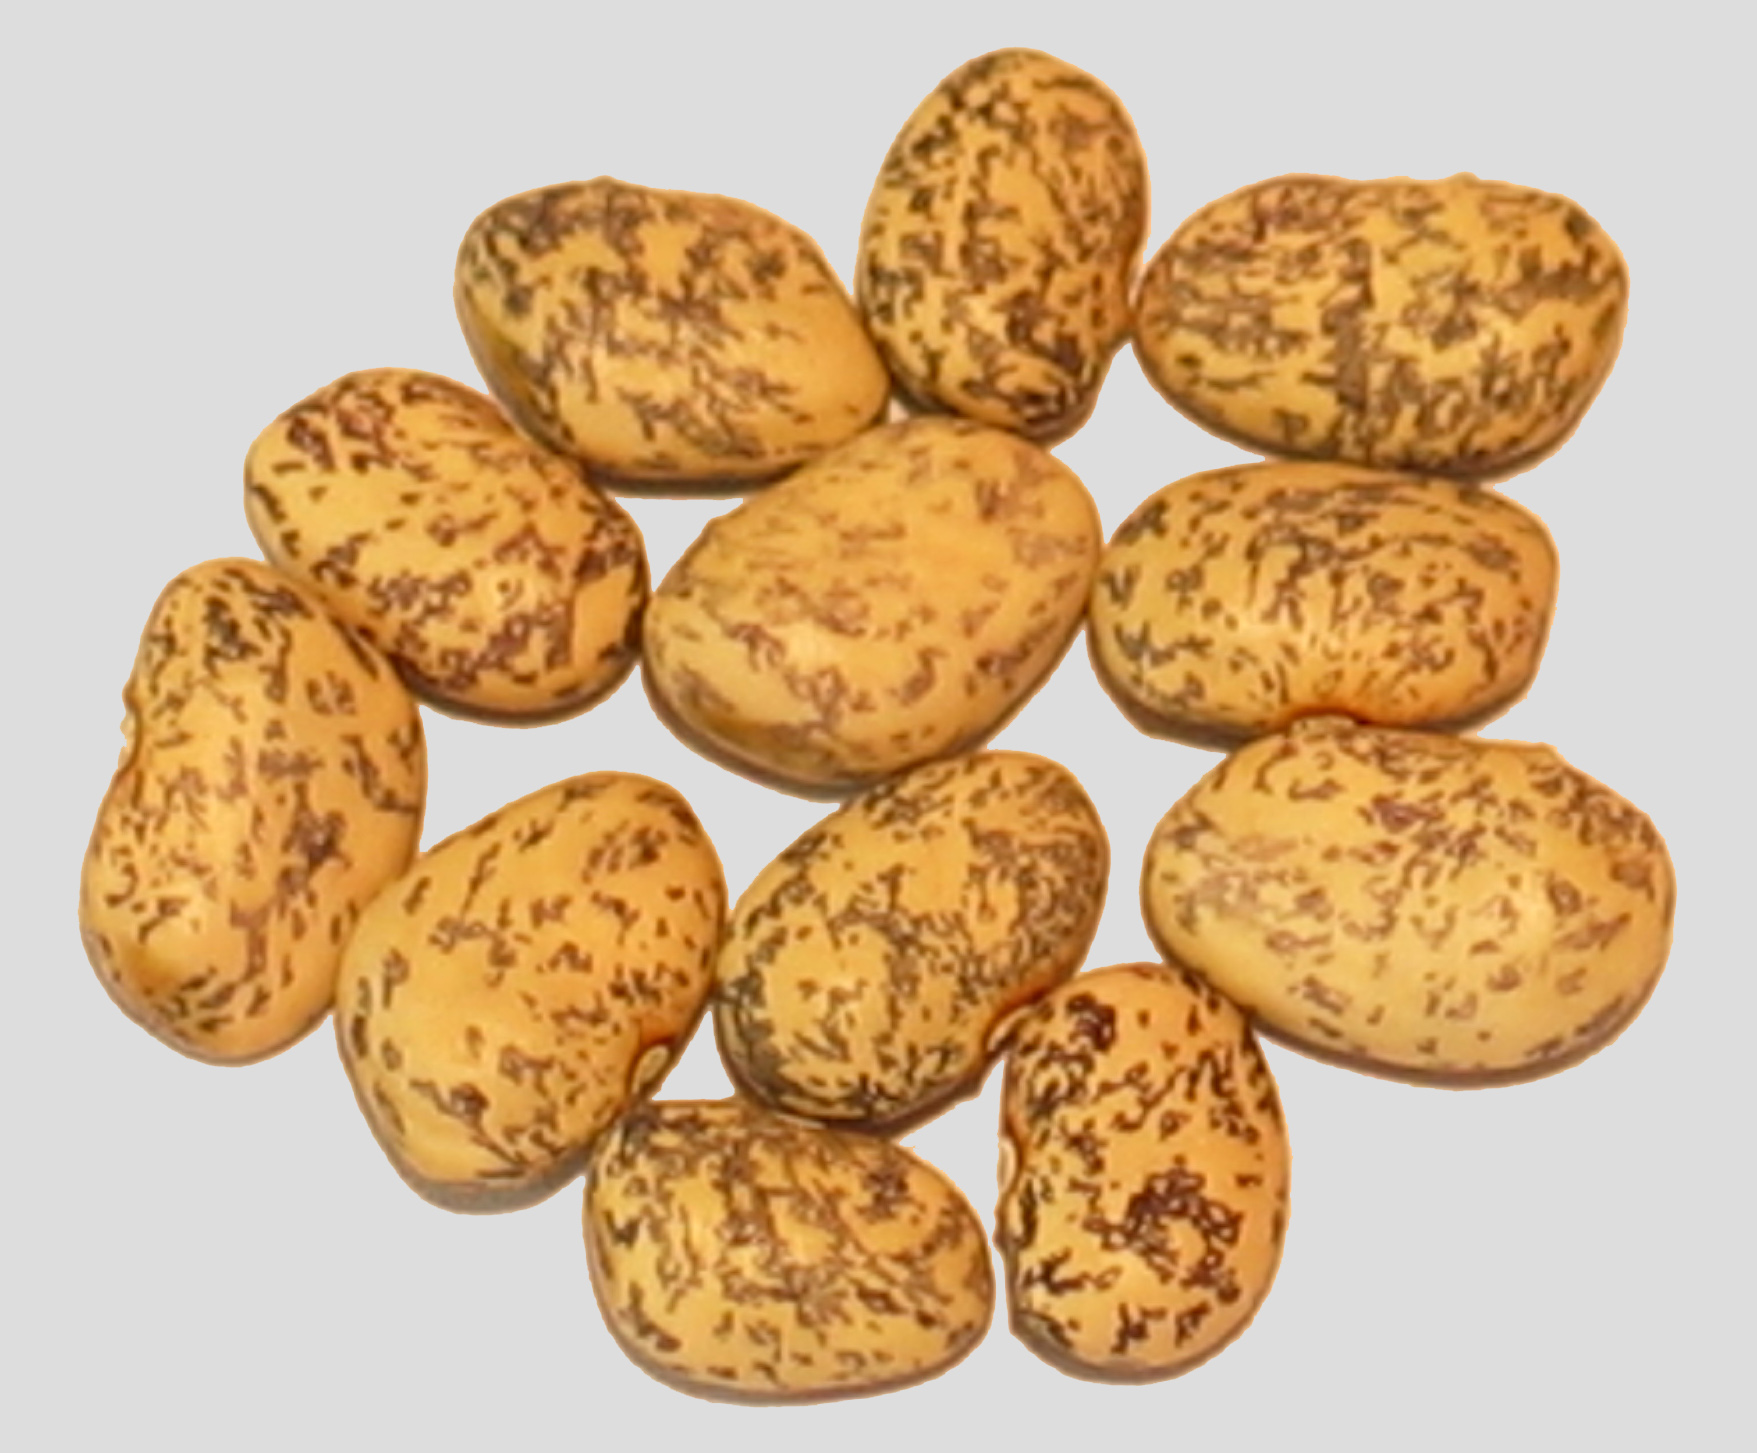 image of Blue Speckled Tepary beans